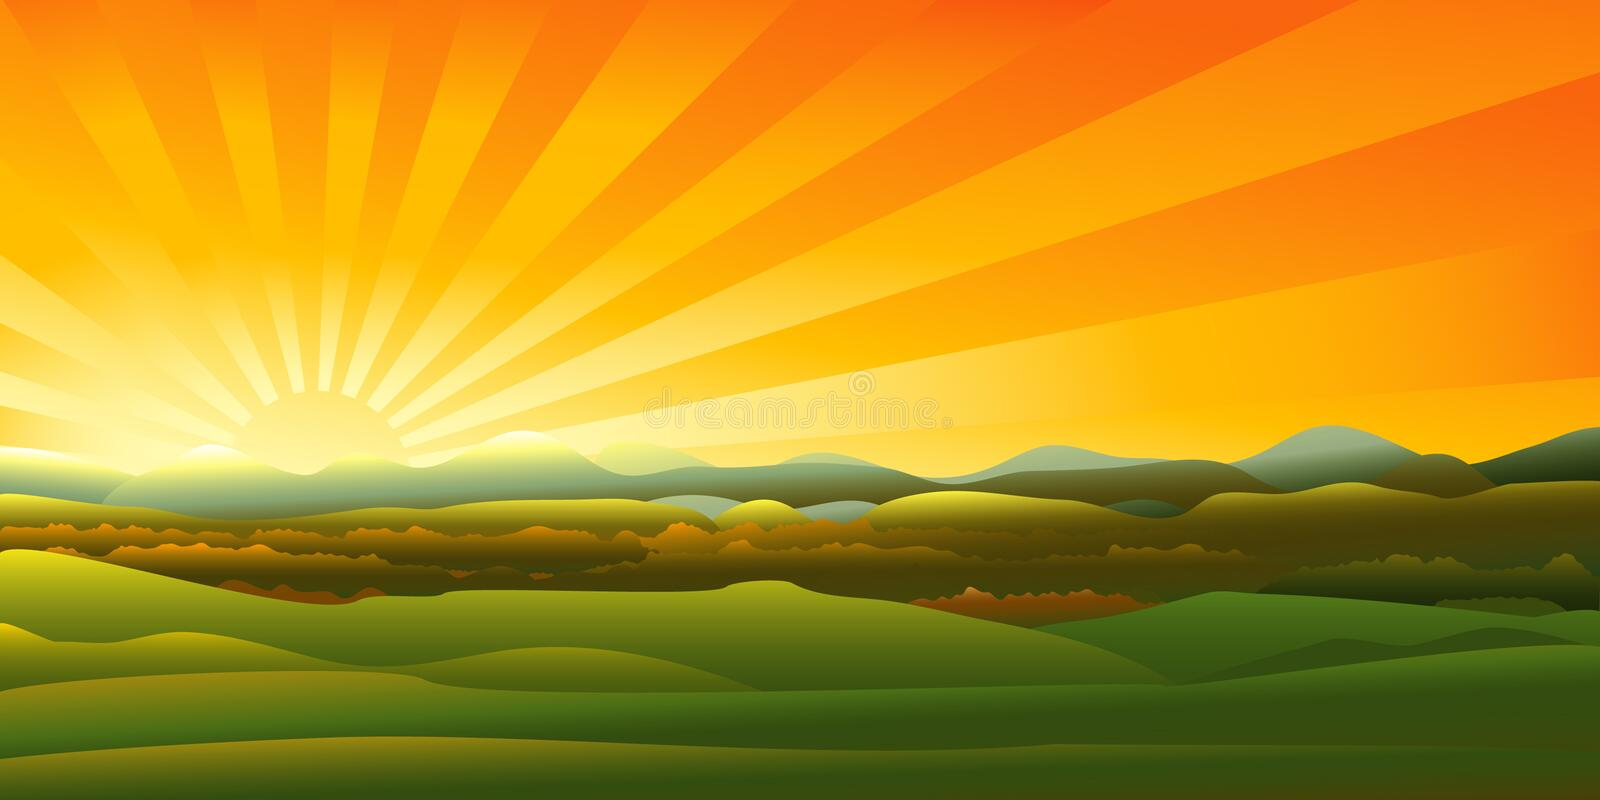 Mountains Sunset Landscape Royalty Free Stock Photography